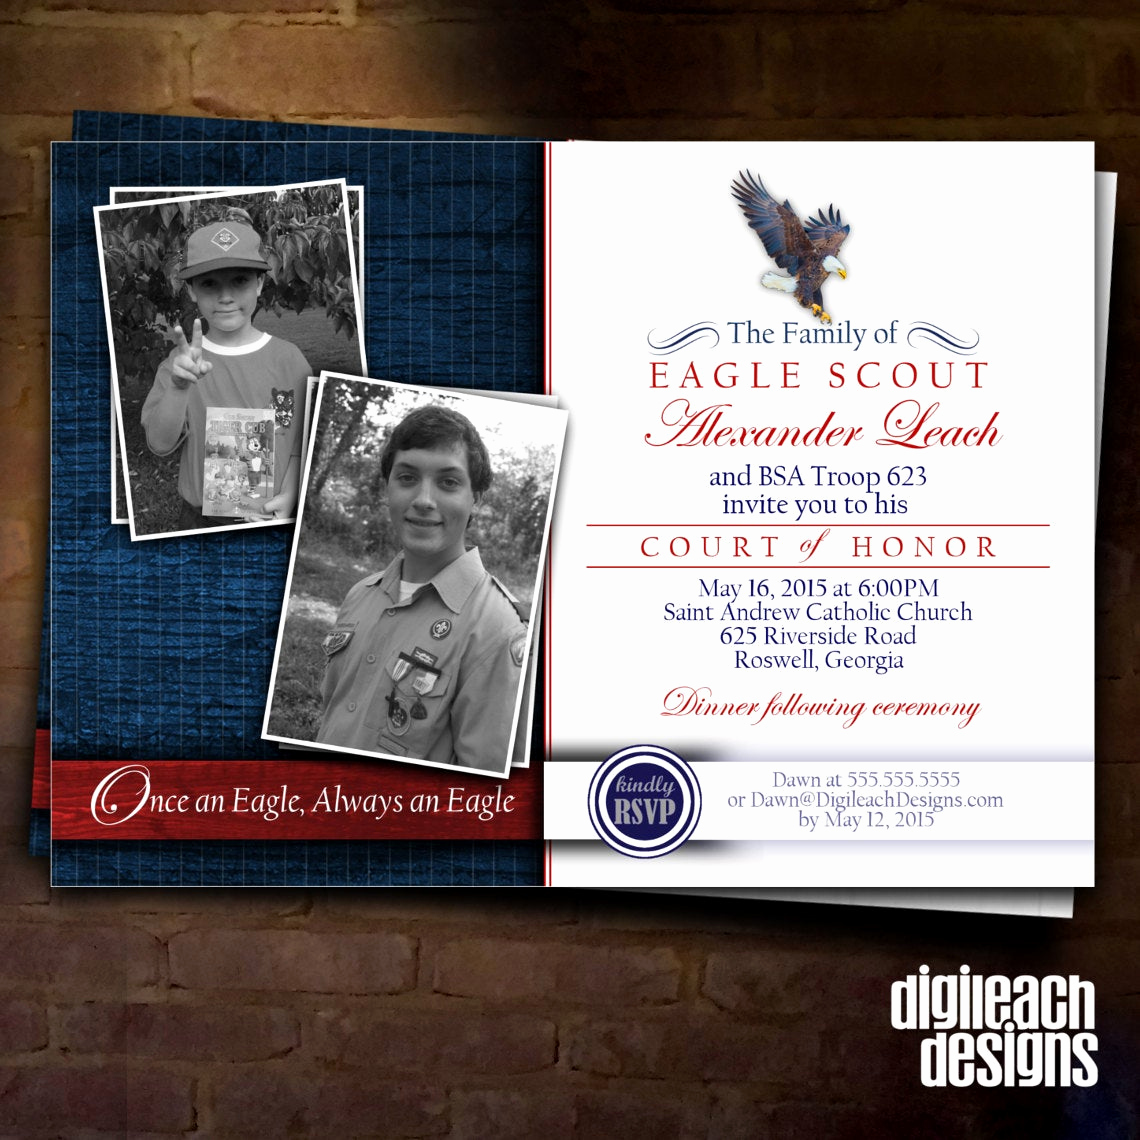 Free Eagle Scout Invitation Template Elegant Eagle Scout Court Of Honor Invitation Eagle Family then and